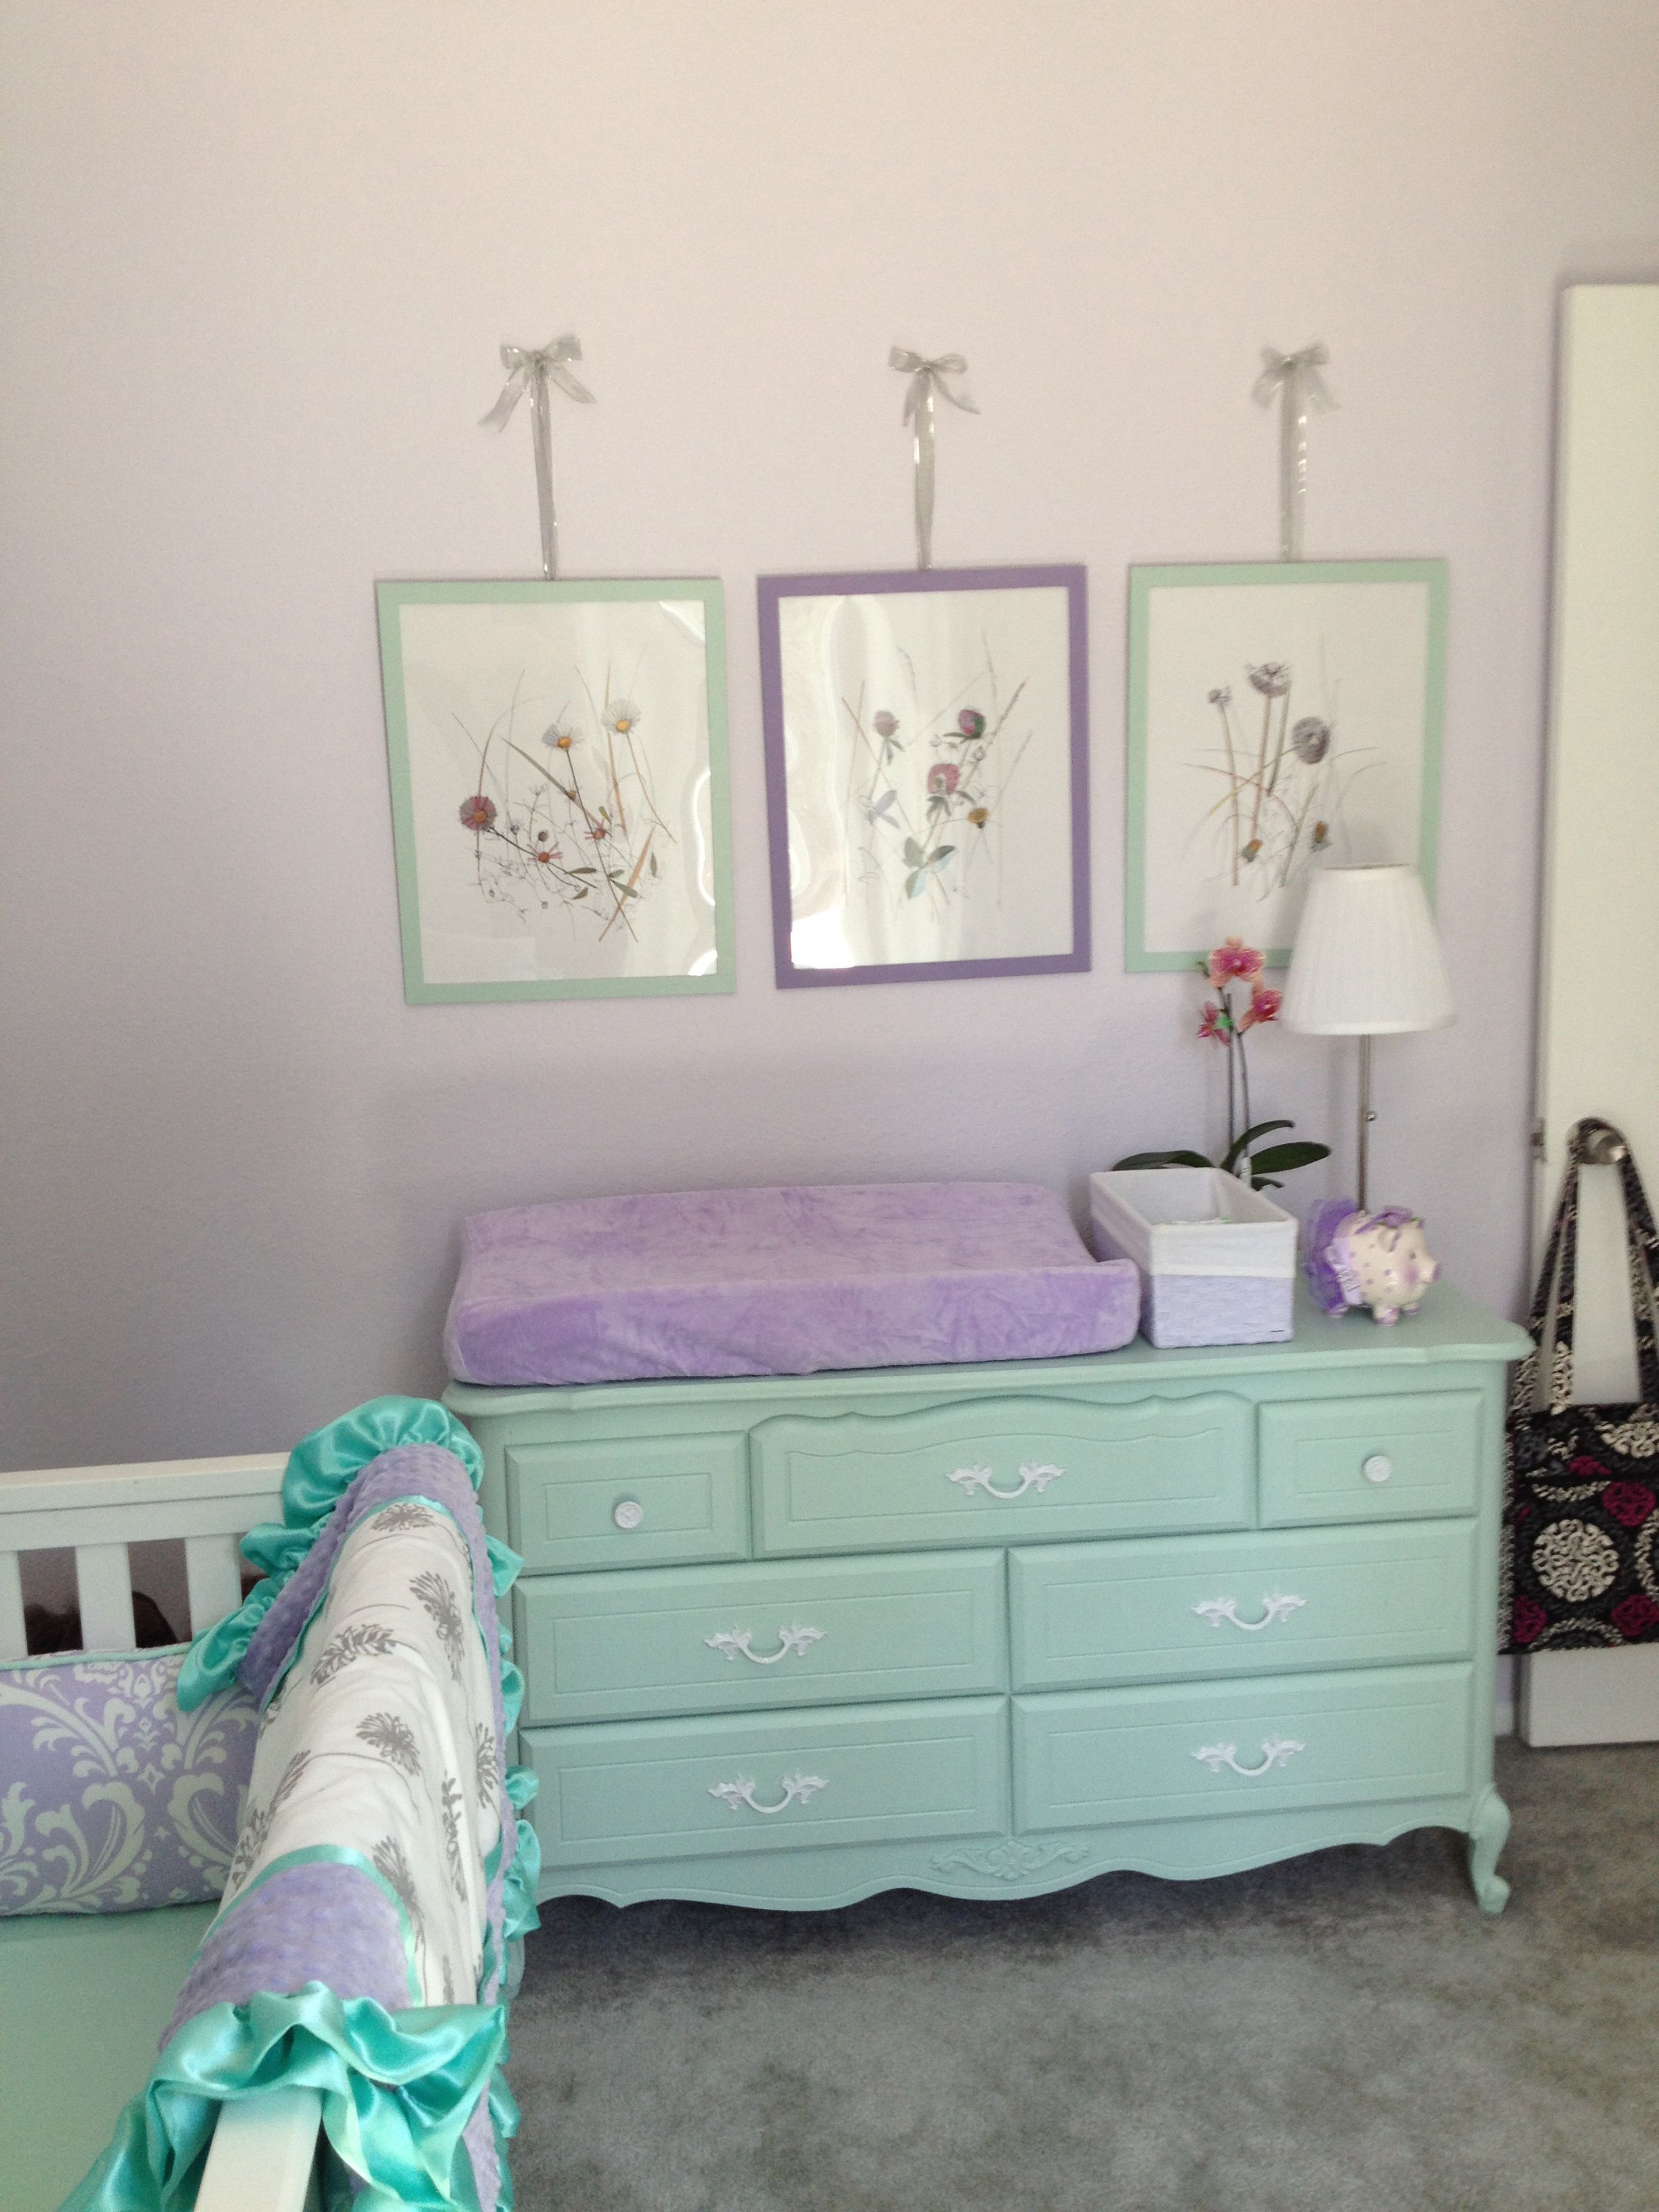 Loving mint and lavender for a baby girl nursery colors not a fan